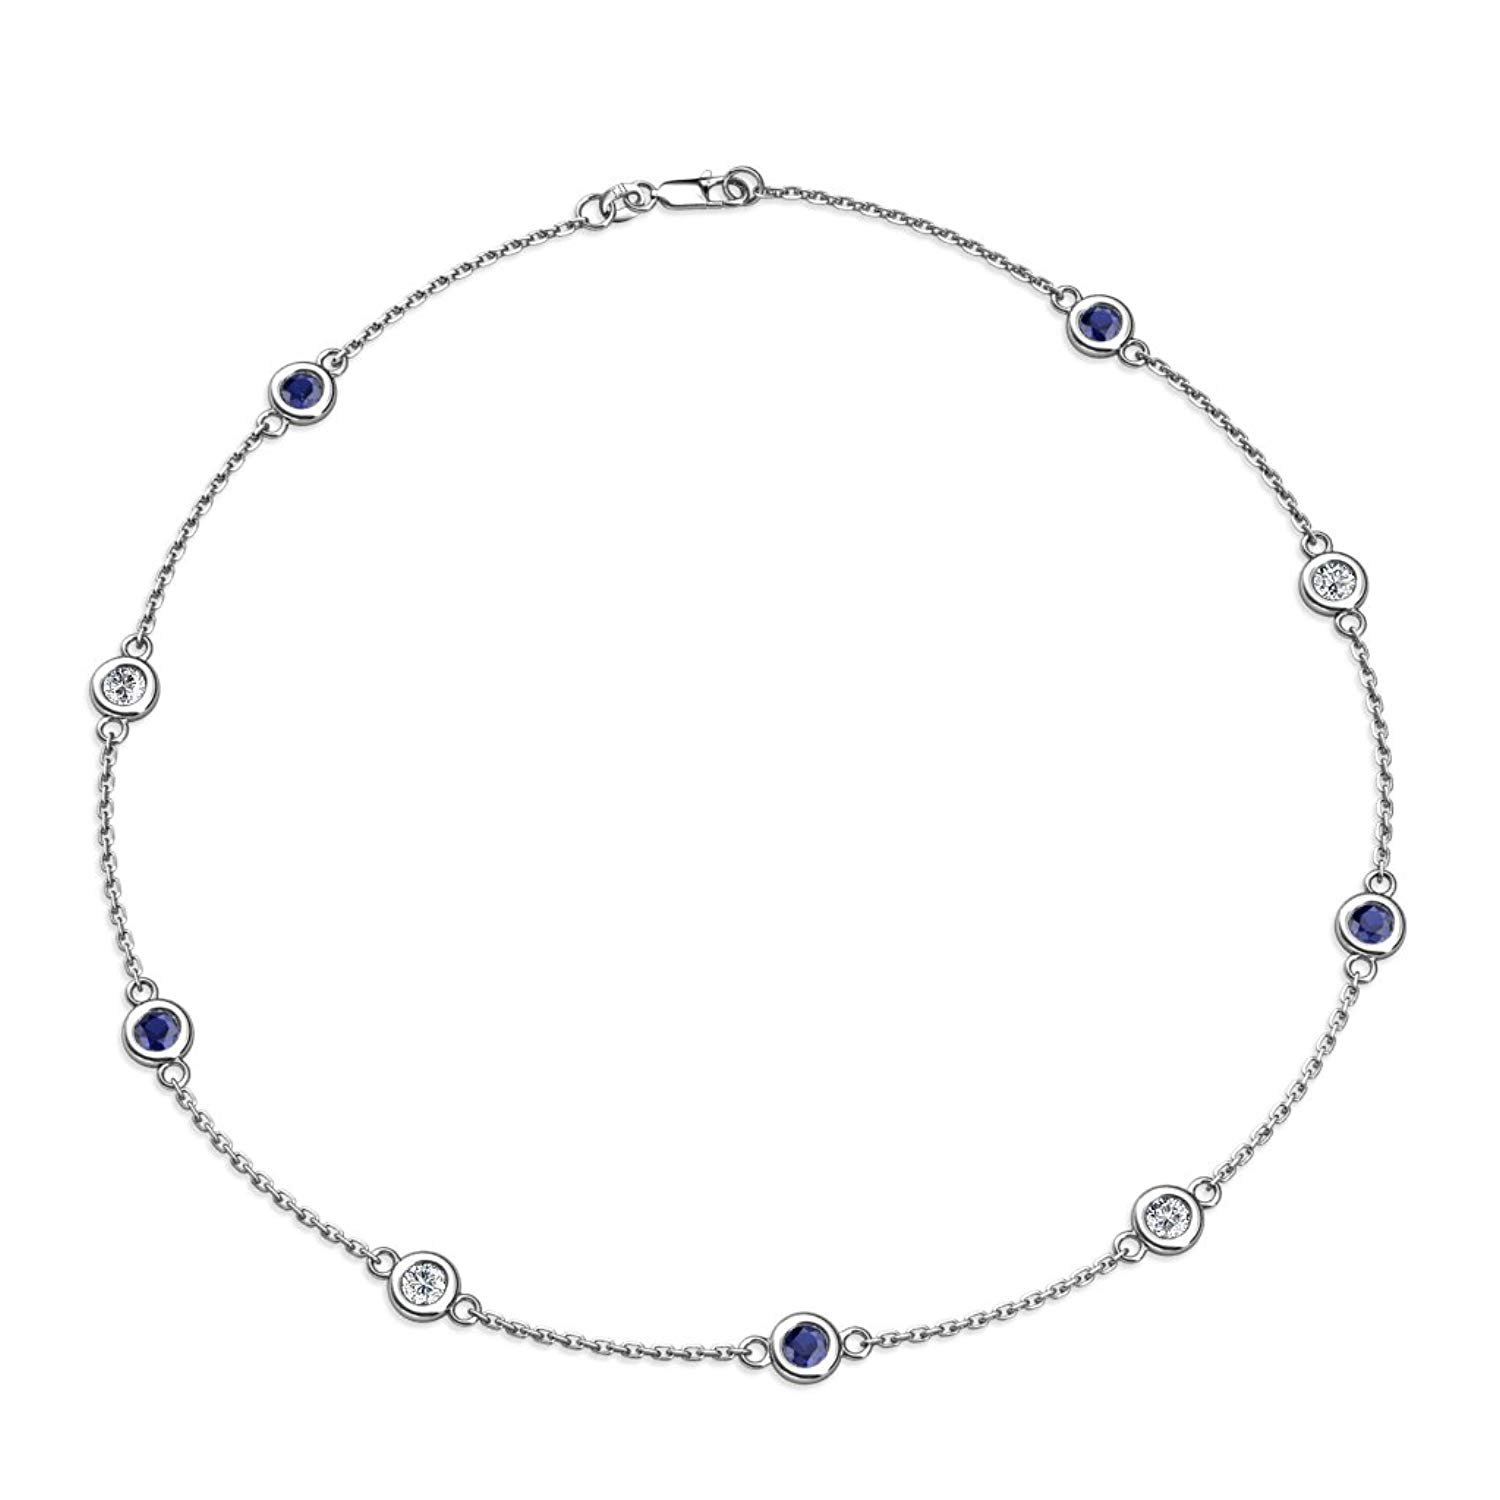 Blue Sapphire and Diamond (SI2-I1, G-H) 9 Station Necklace 2.31 cttw in 14K White Gold by TriJewels